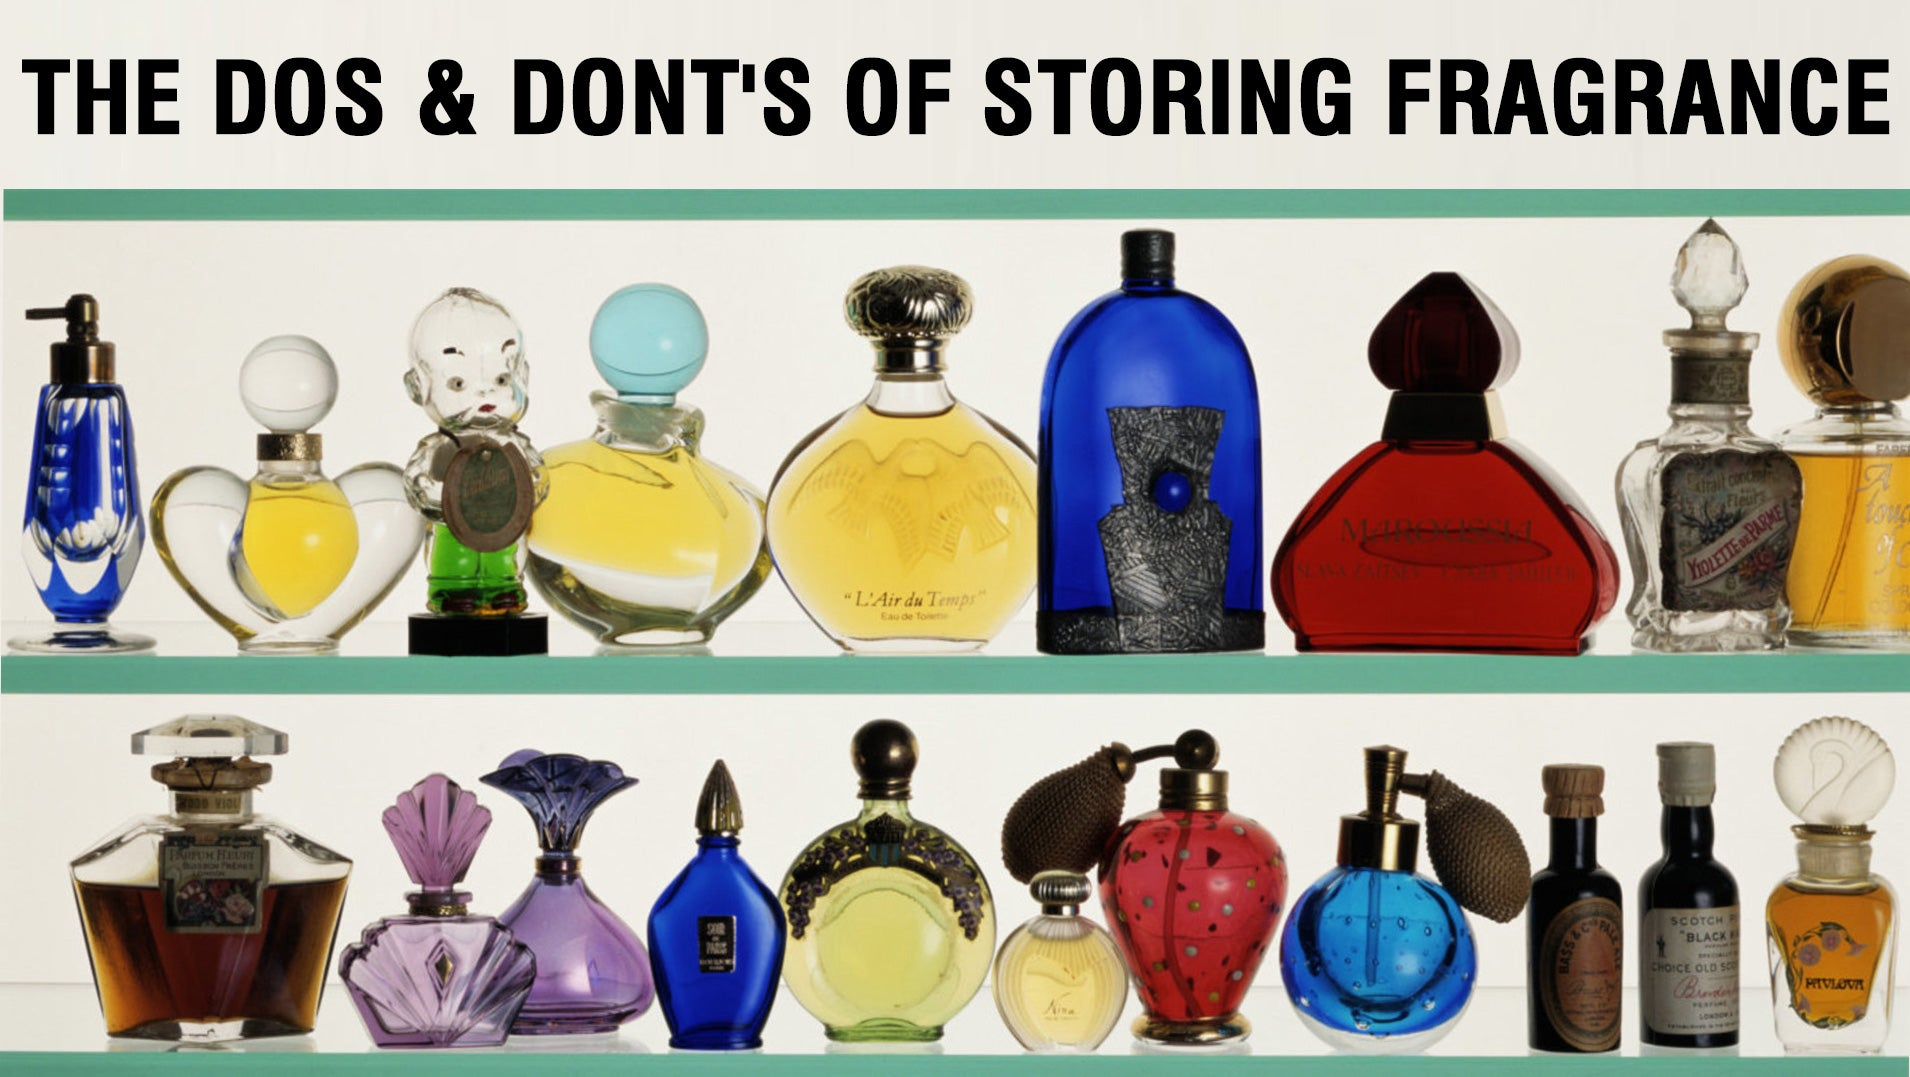 10 Dos and Donts of Storing Perfume